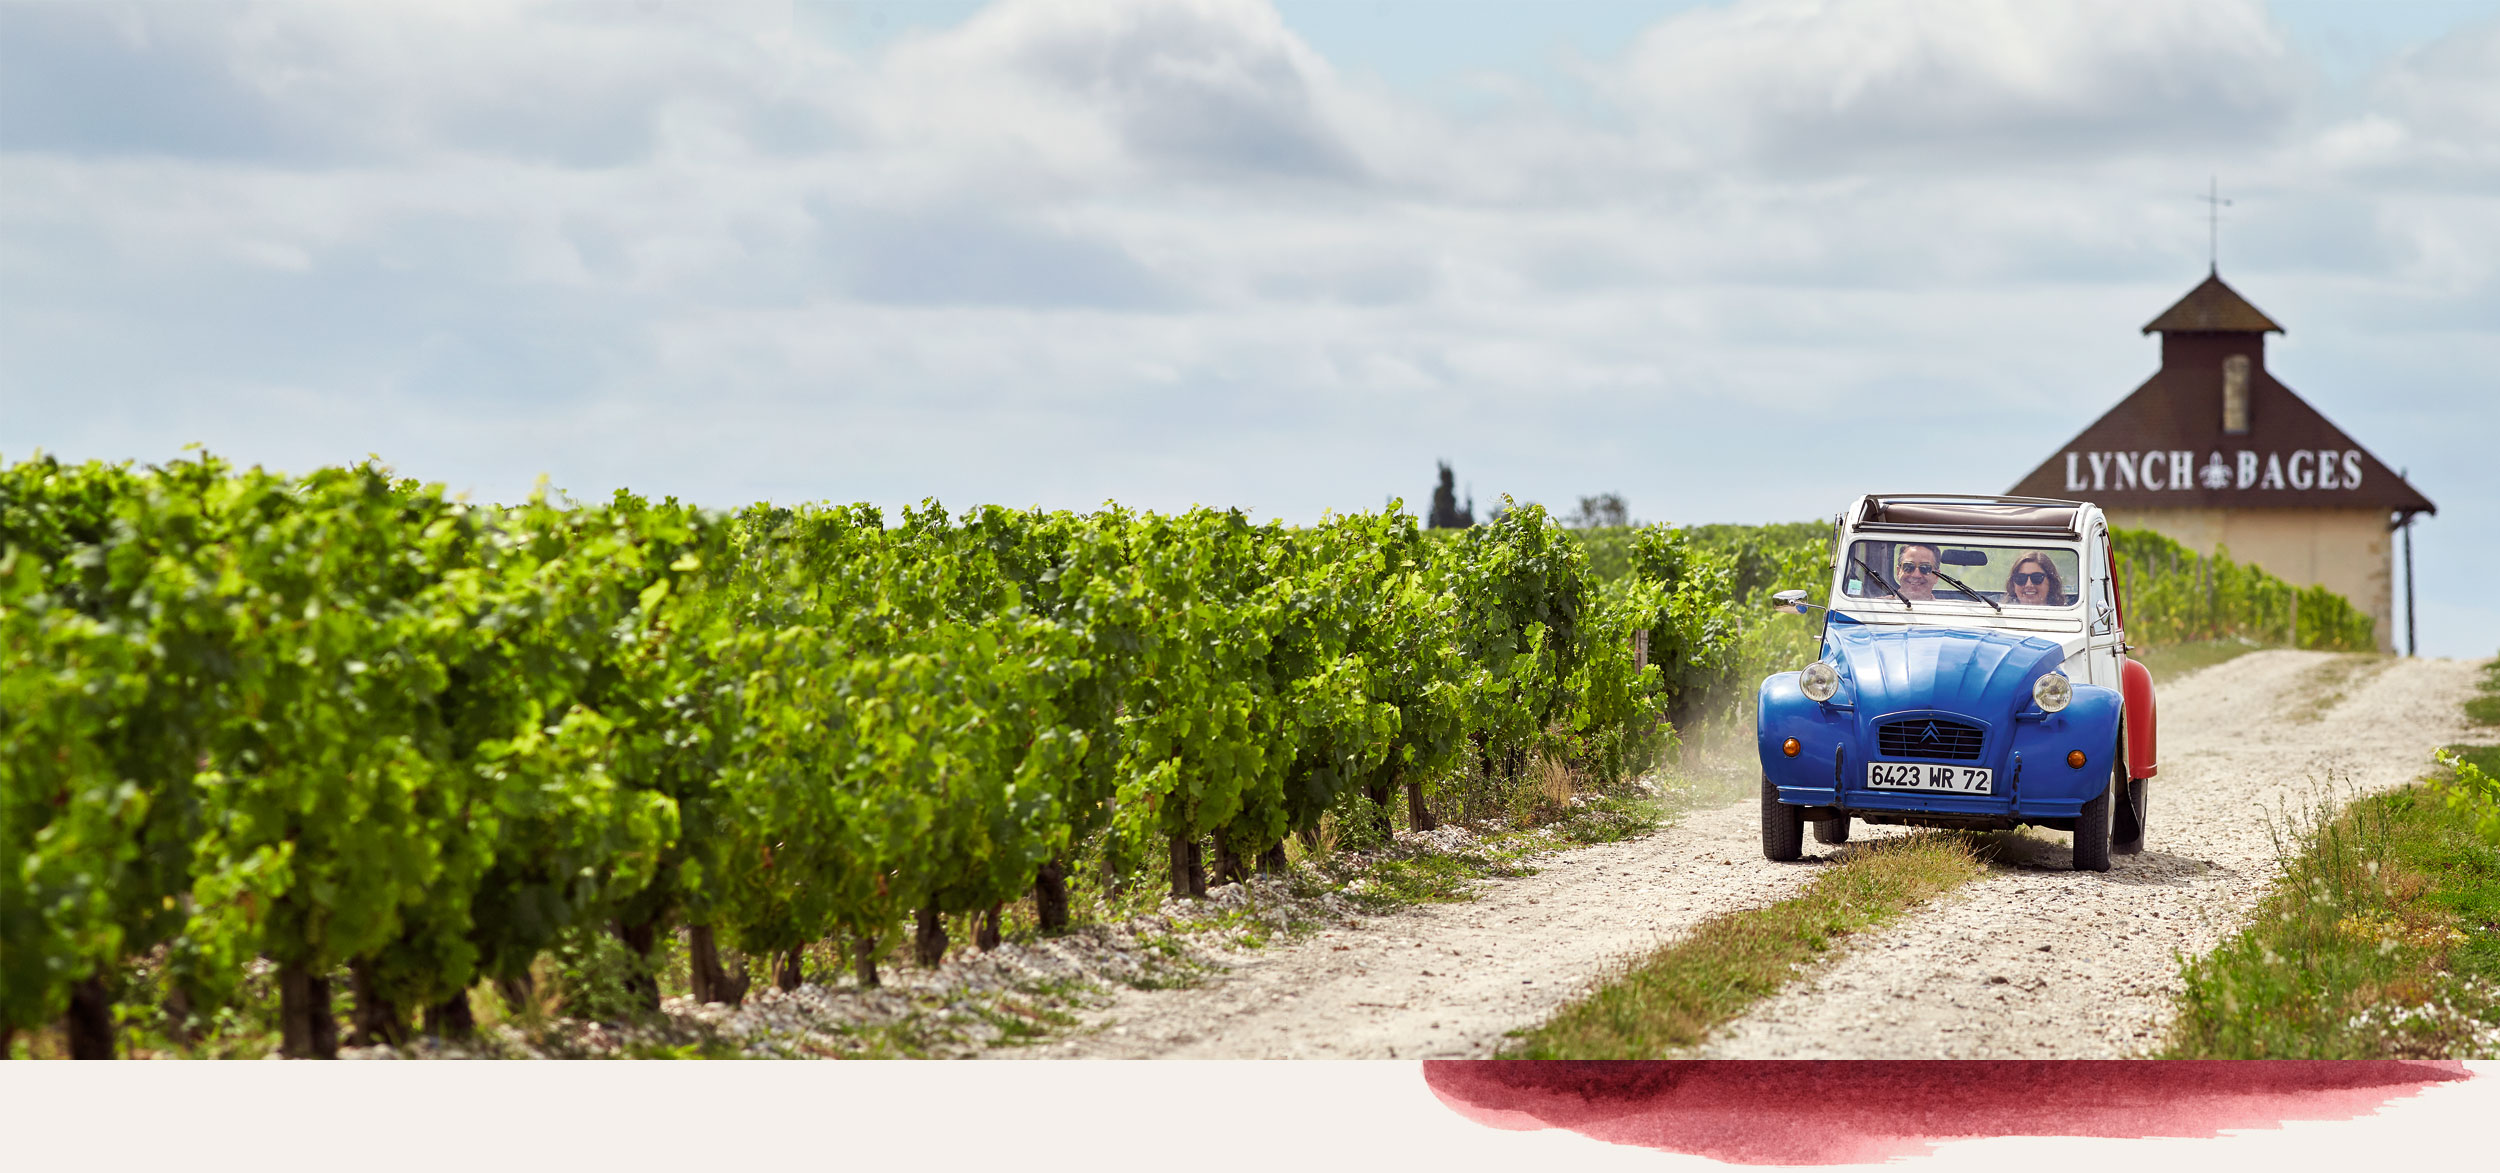 Experience Bordeaux winemaking at Chateau Lynch Bages